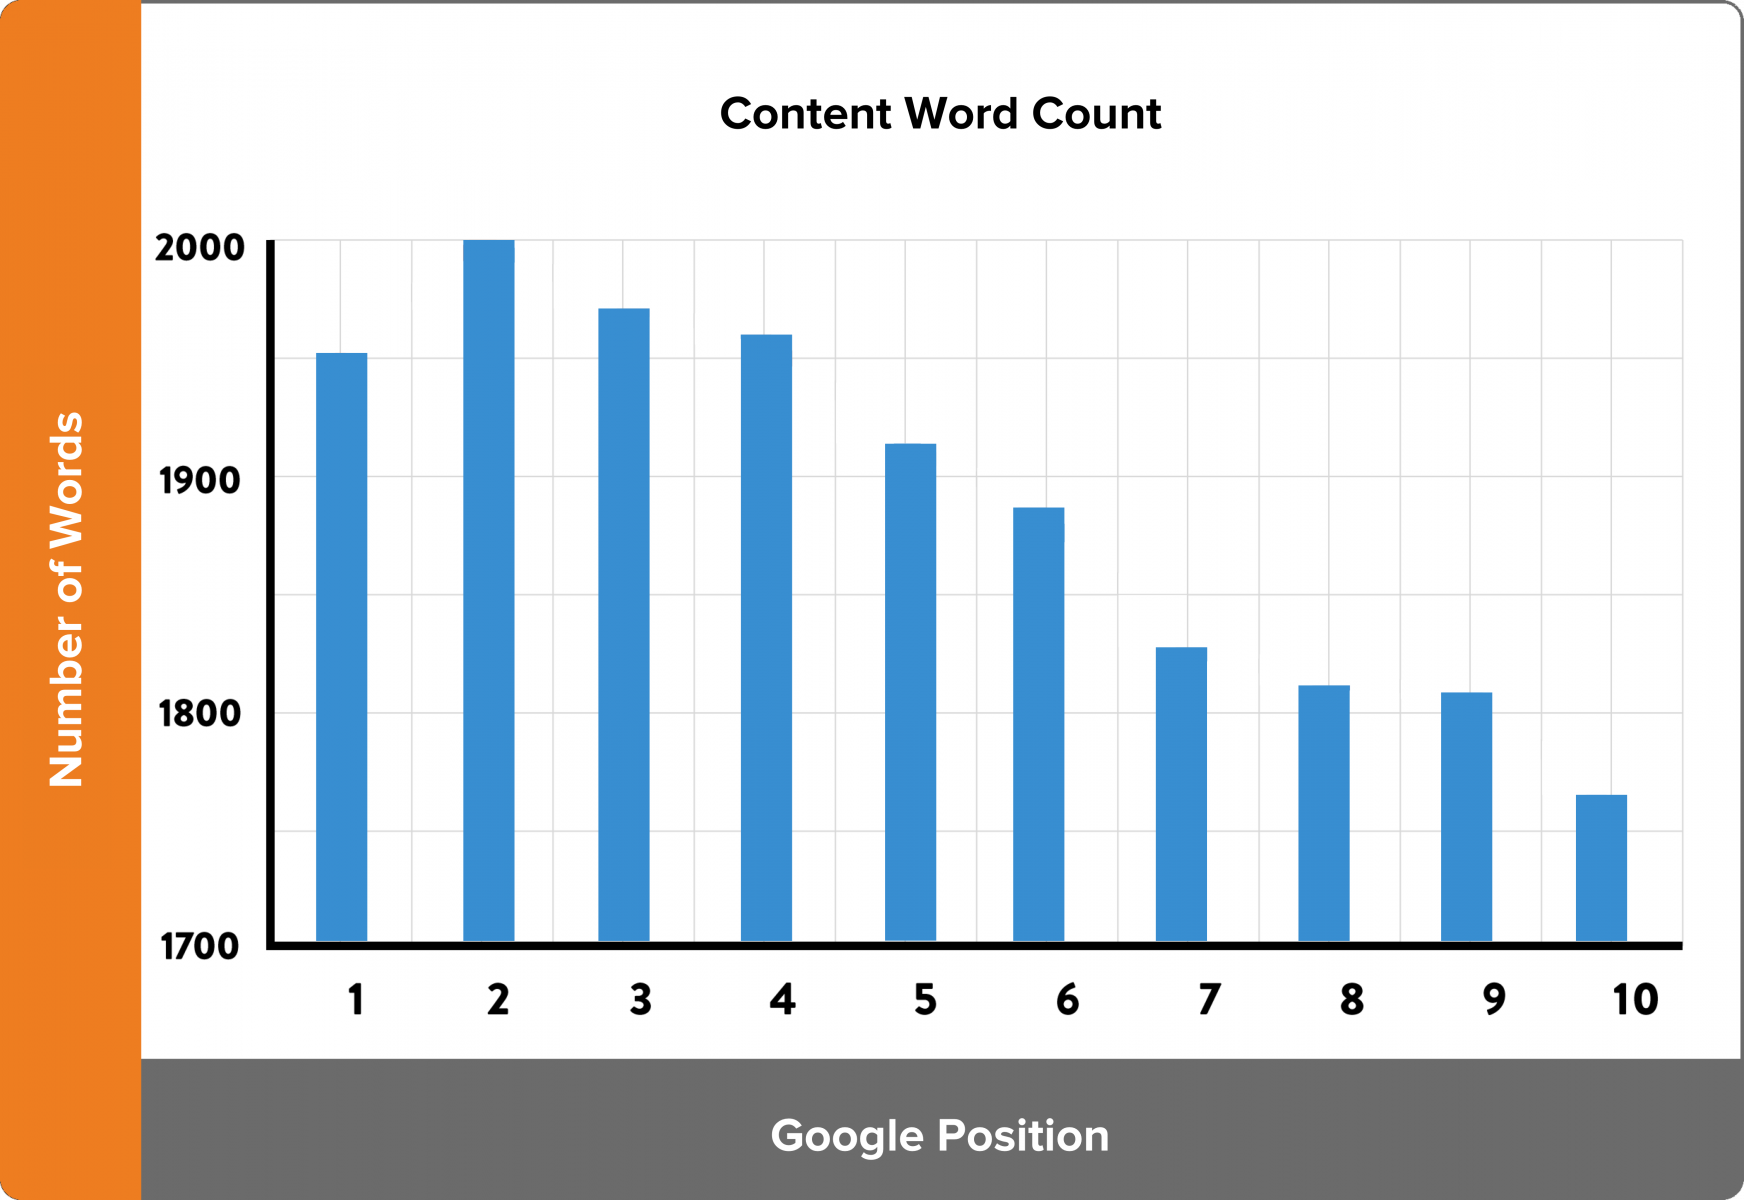 Google Ranking Position Word Count